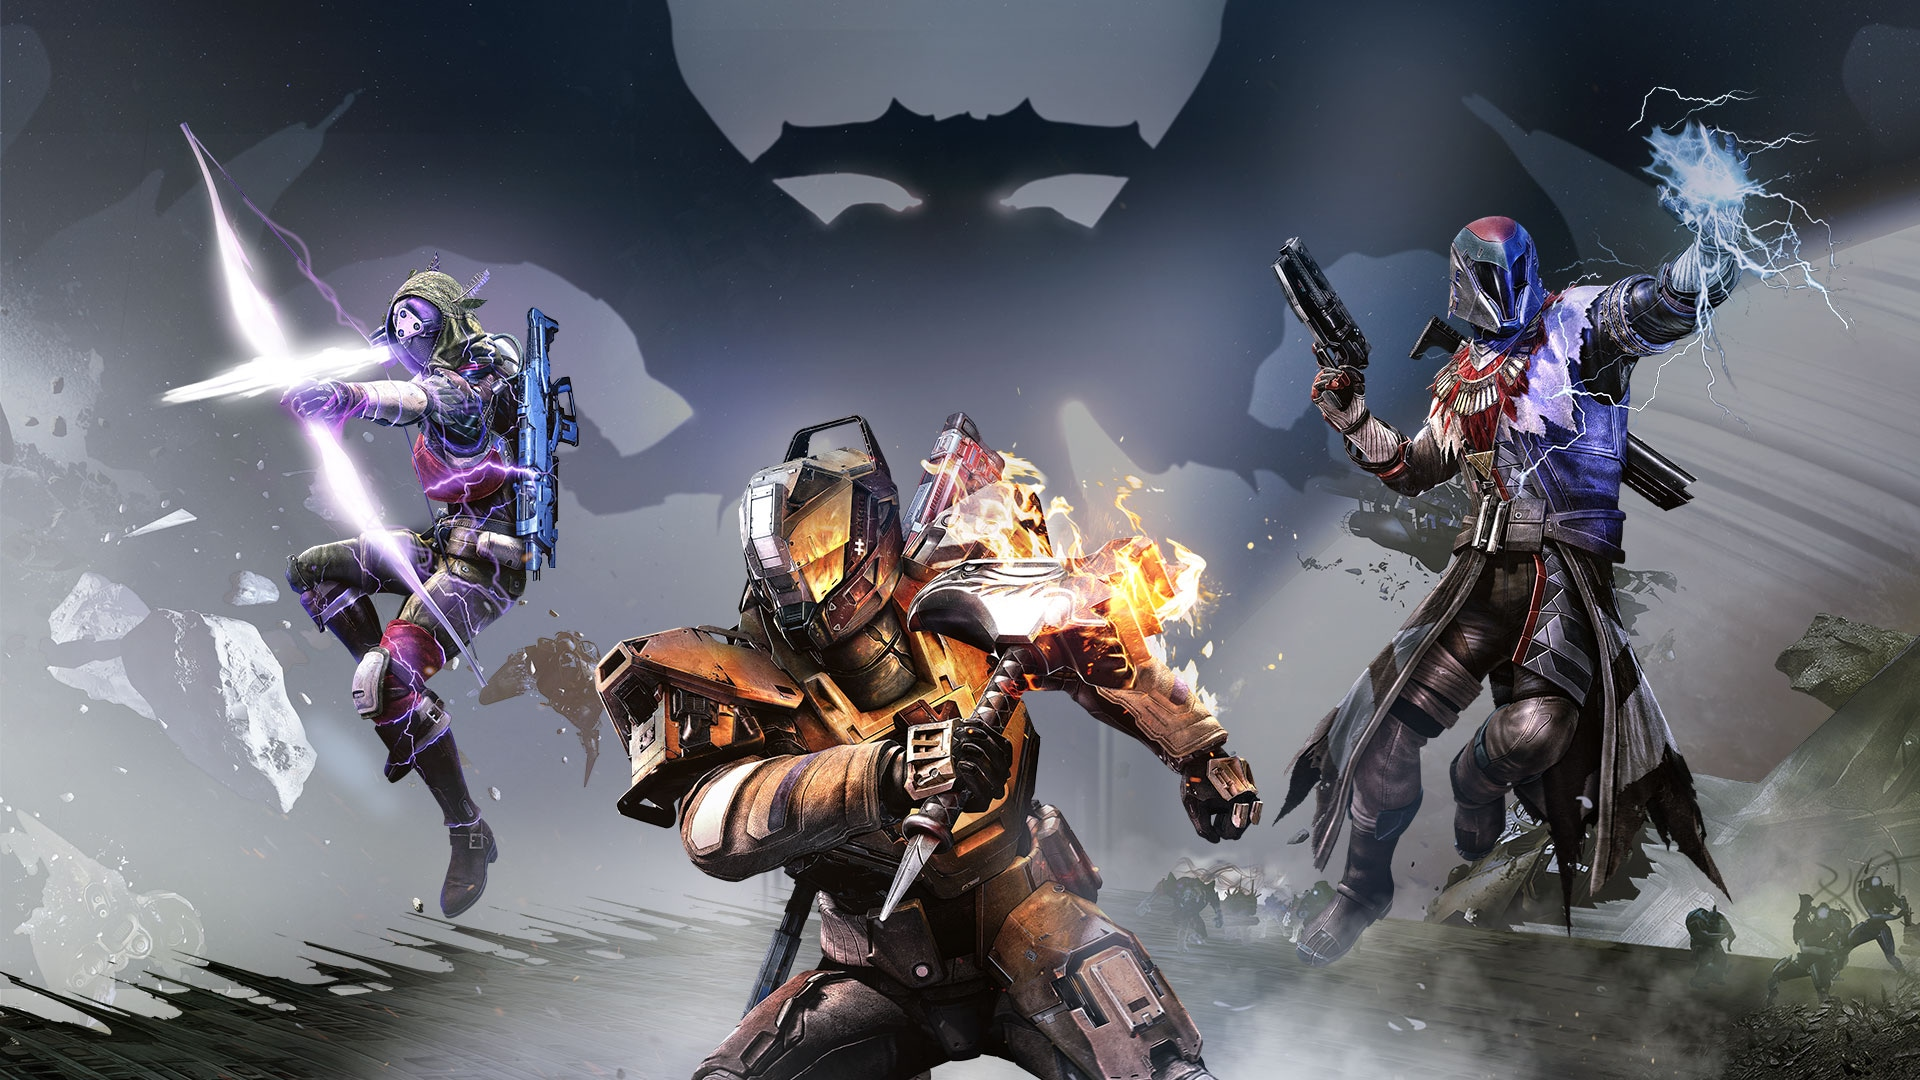 Destiny The Taken King Wallpaper